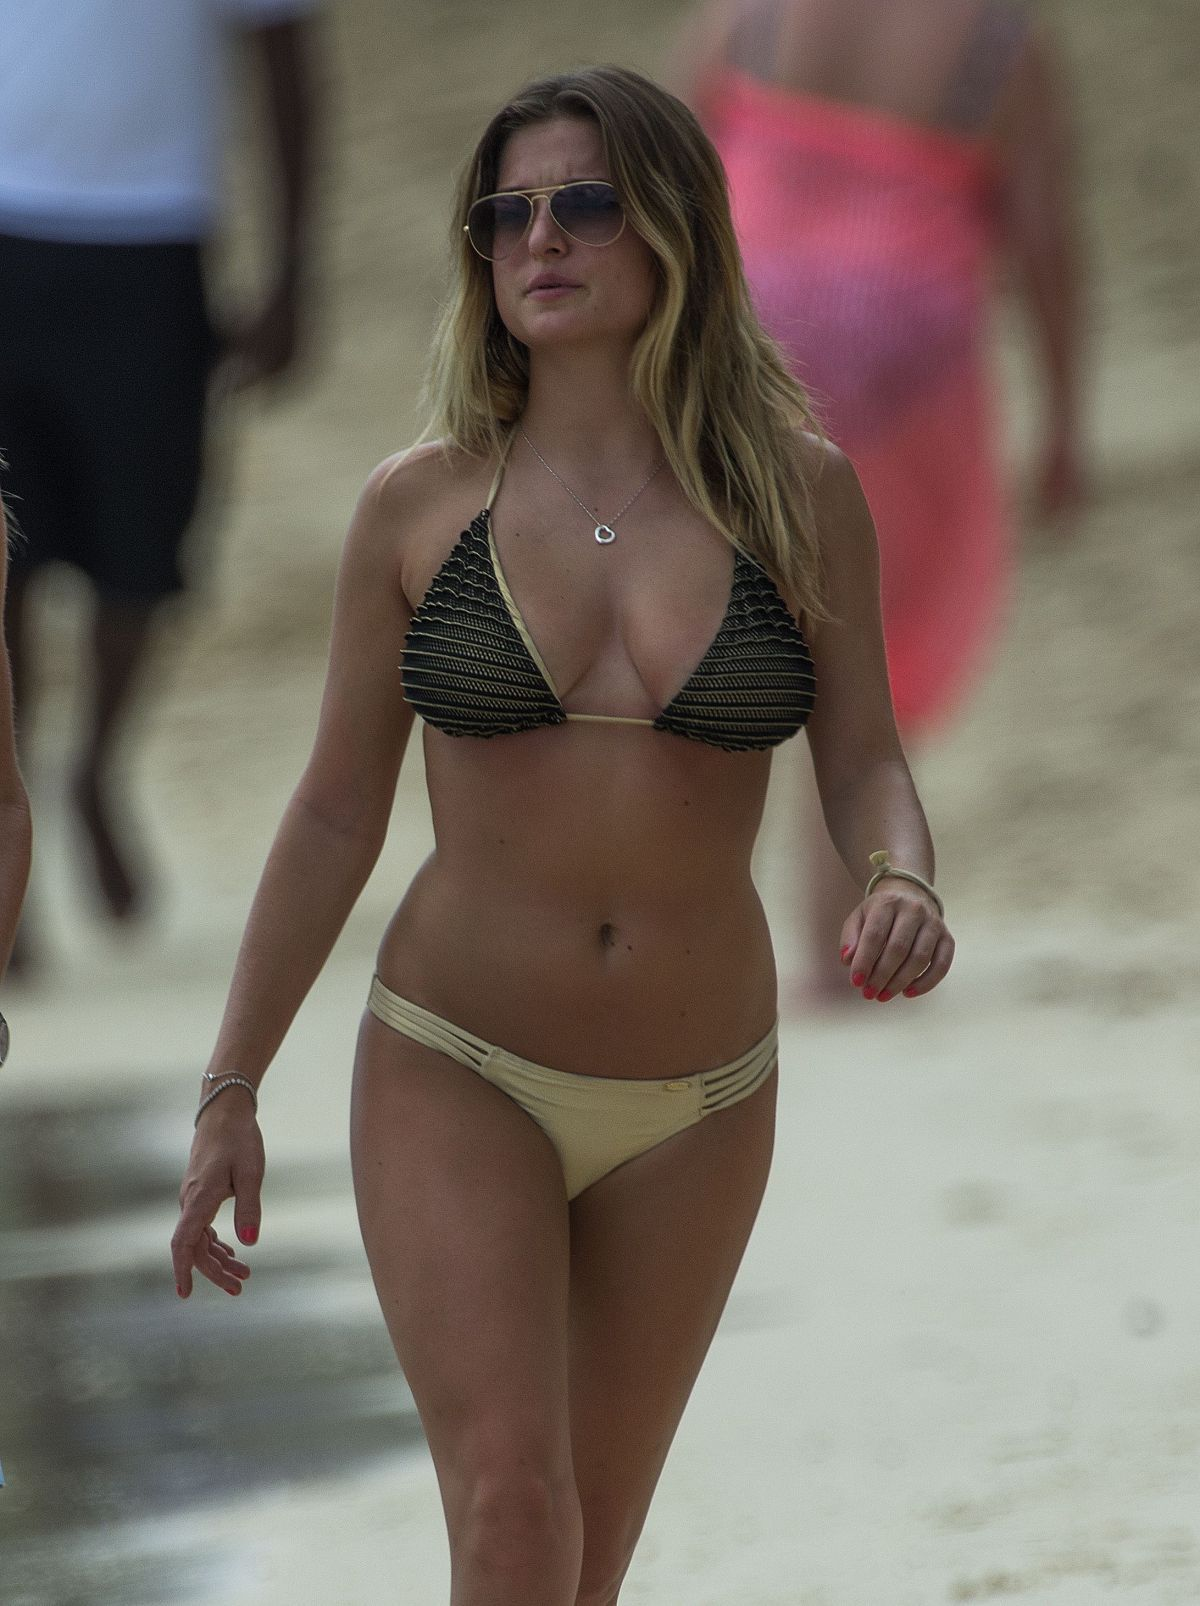 Cleavage Zara Holland nudes (42 photos), Topless, Fappening, Instagram, in bikini 2006